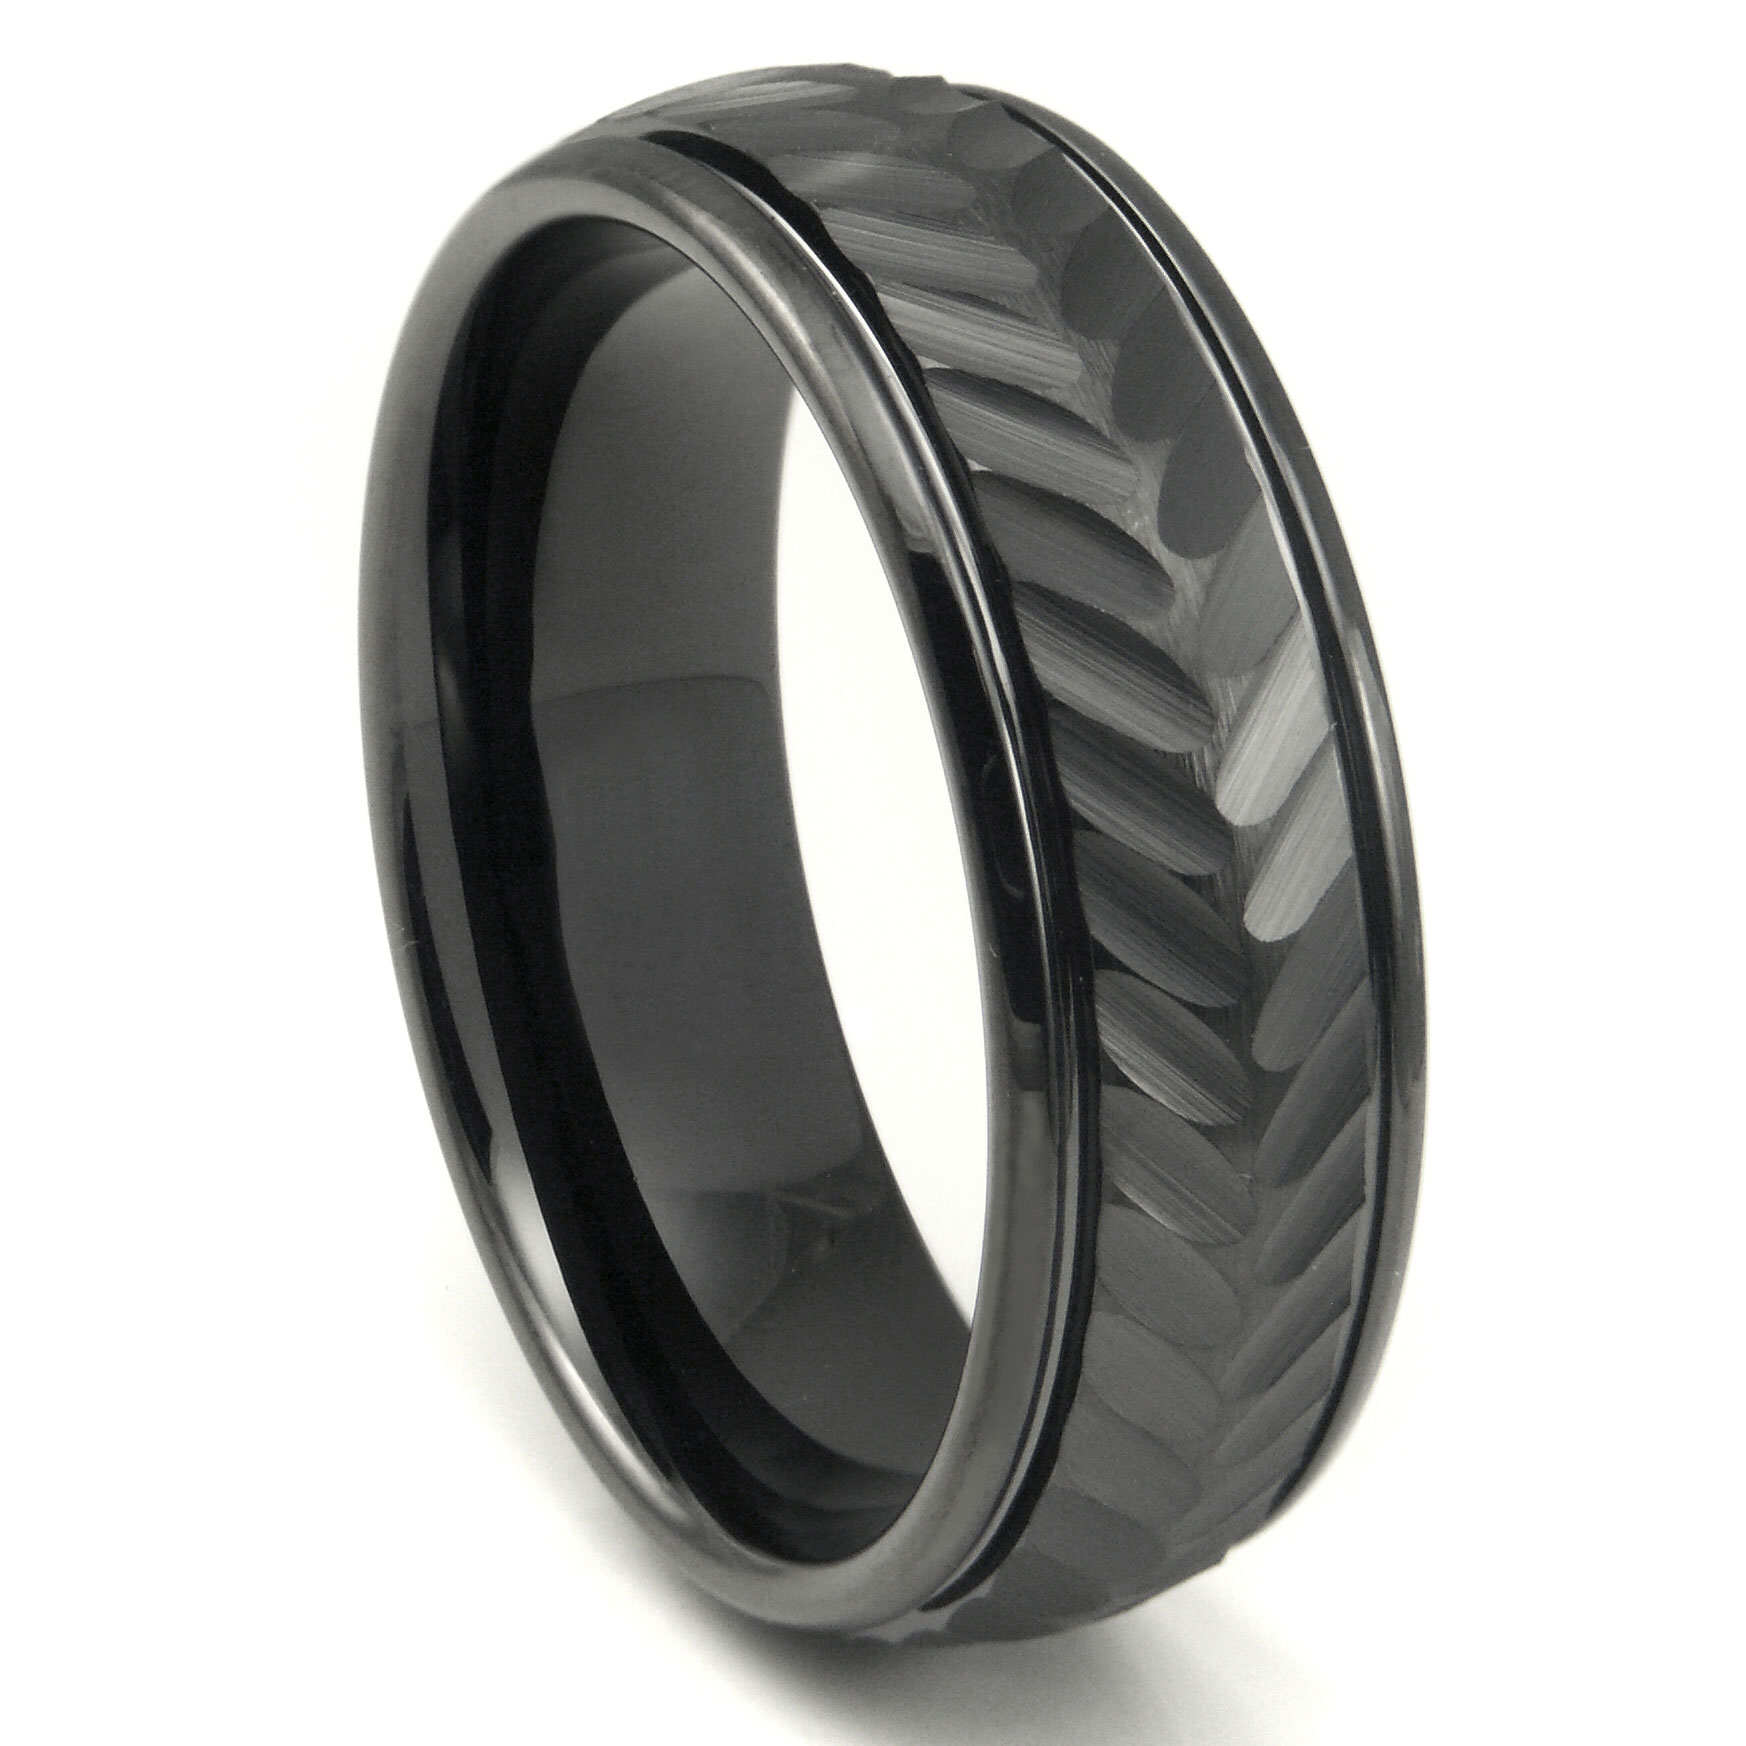 men black rings wedding band for coolman mens s ring coolmanjeweller steel stainless